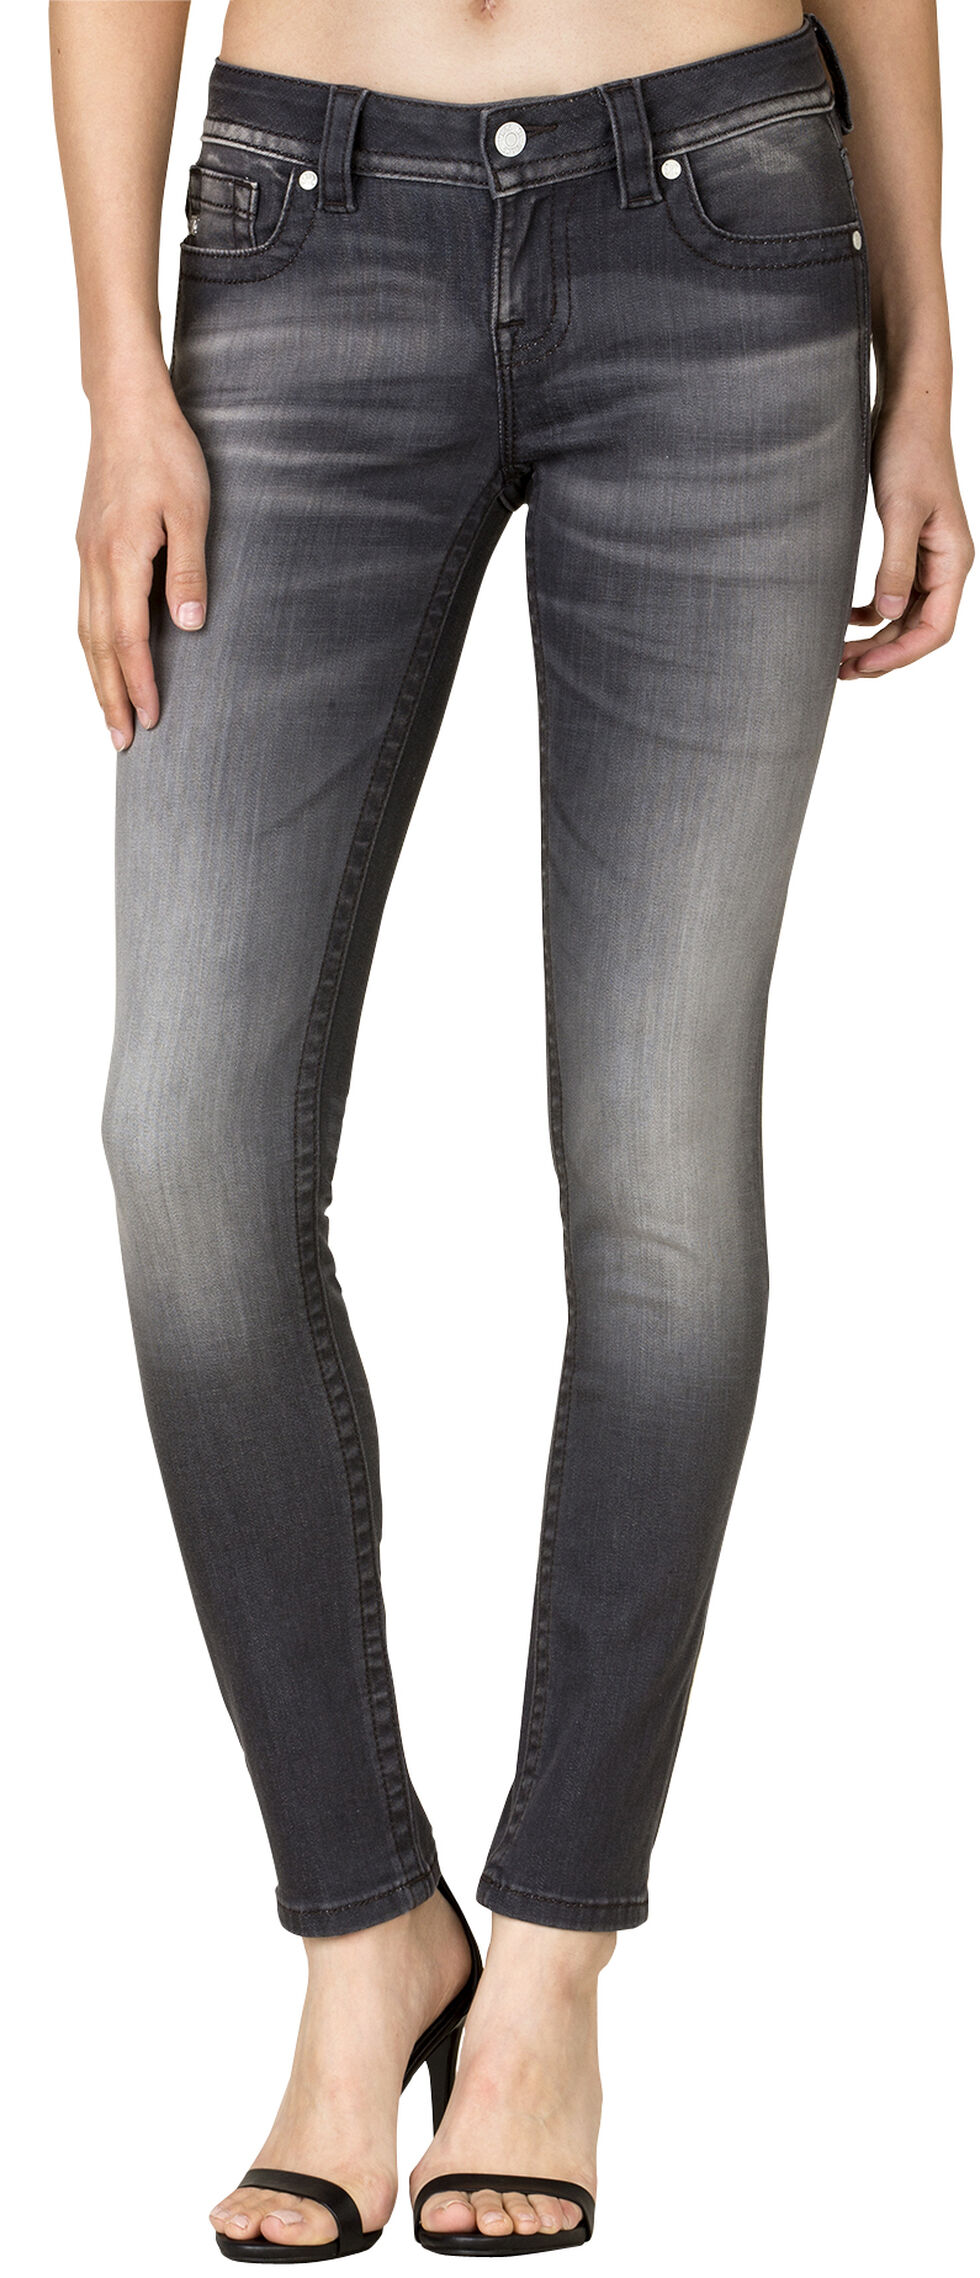 Miss Me Women's Grey City Mid-Rise Skinny Jeans, Grey, hi-res